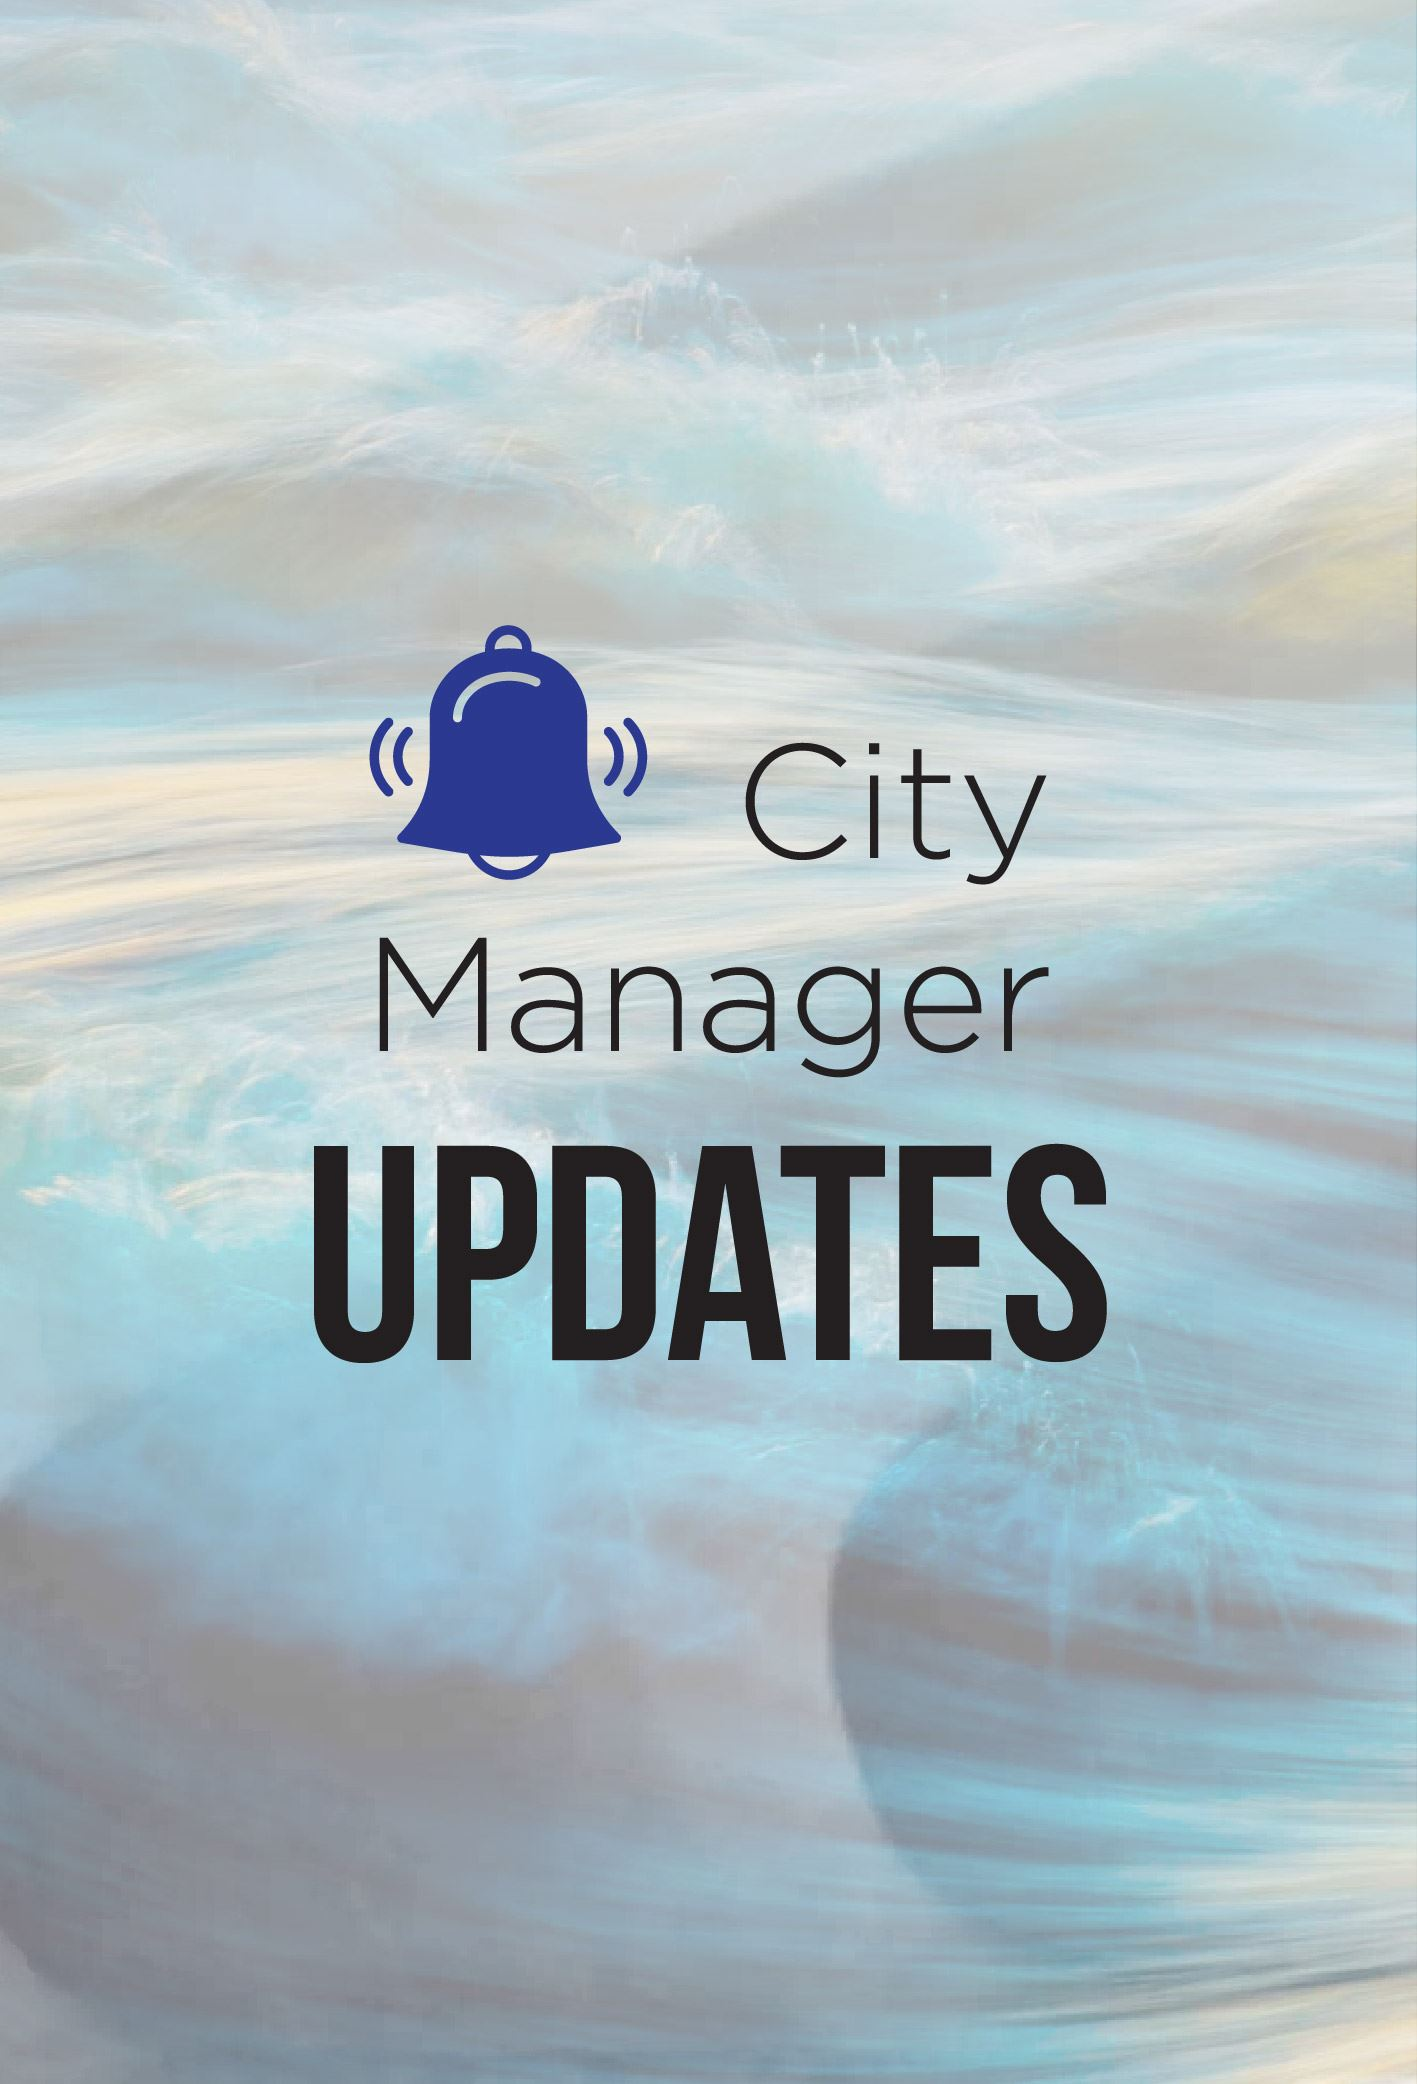 City Manager Updates